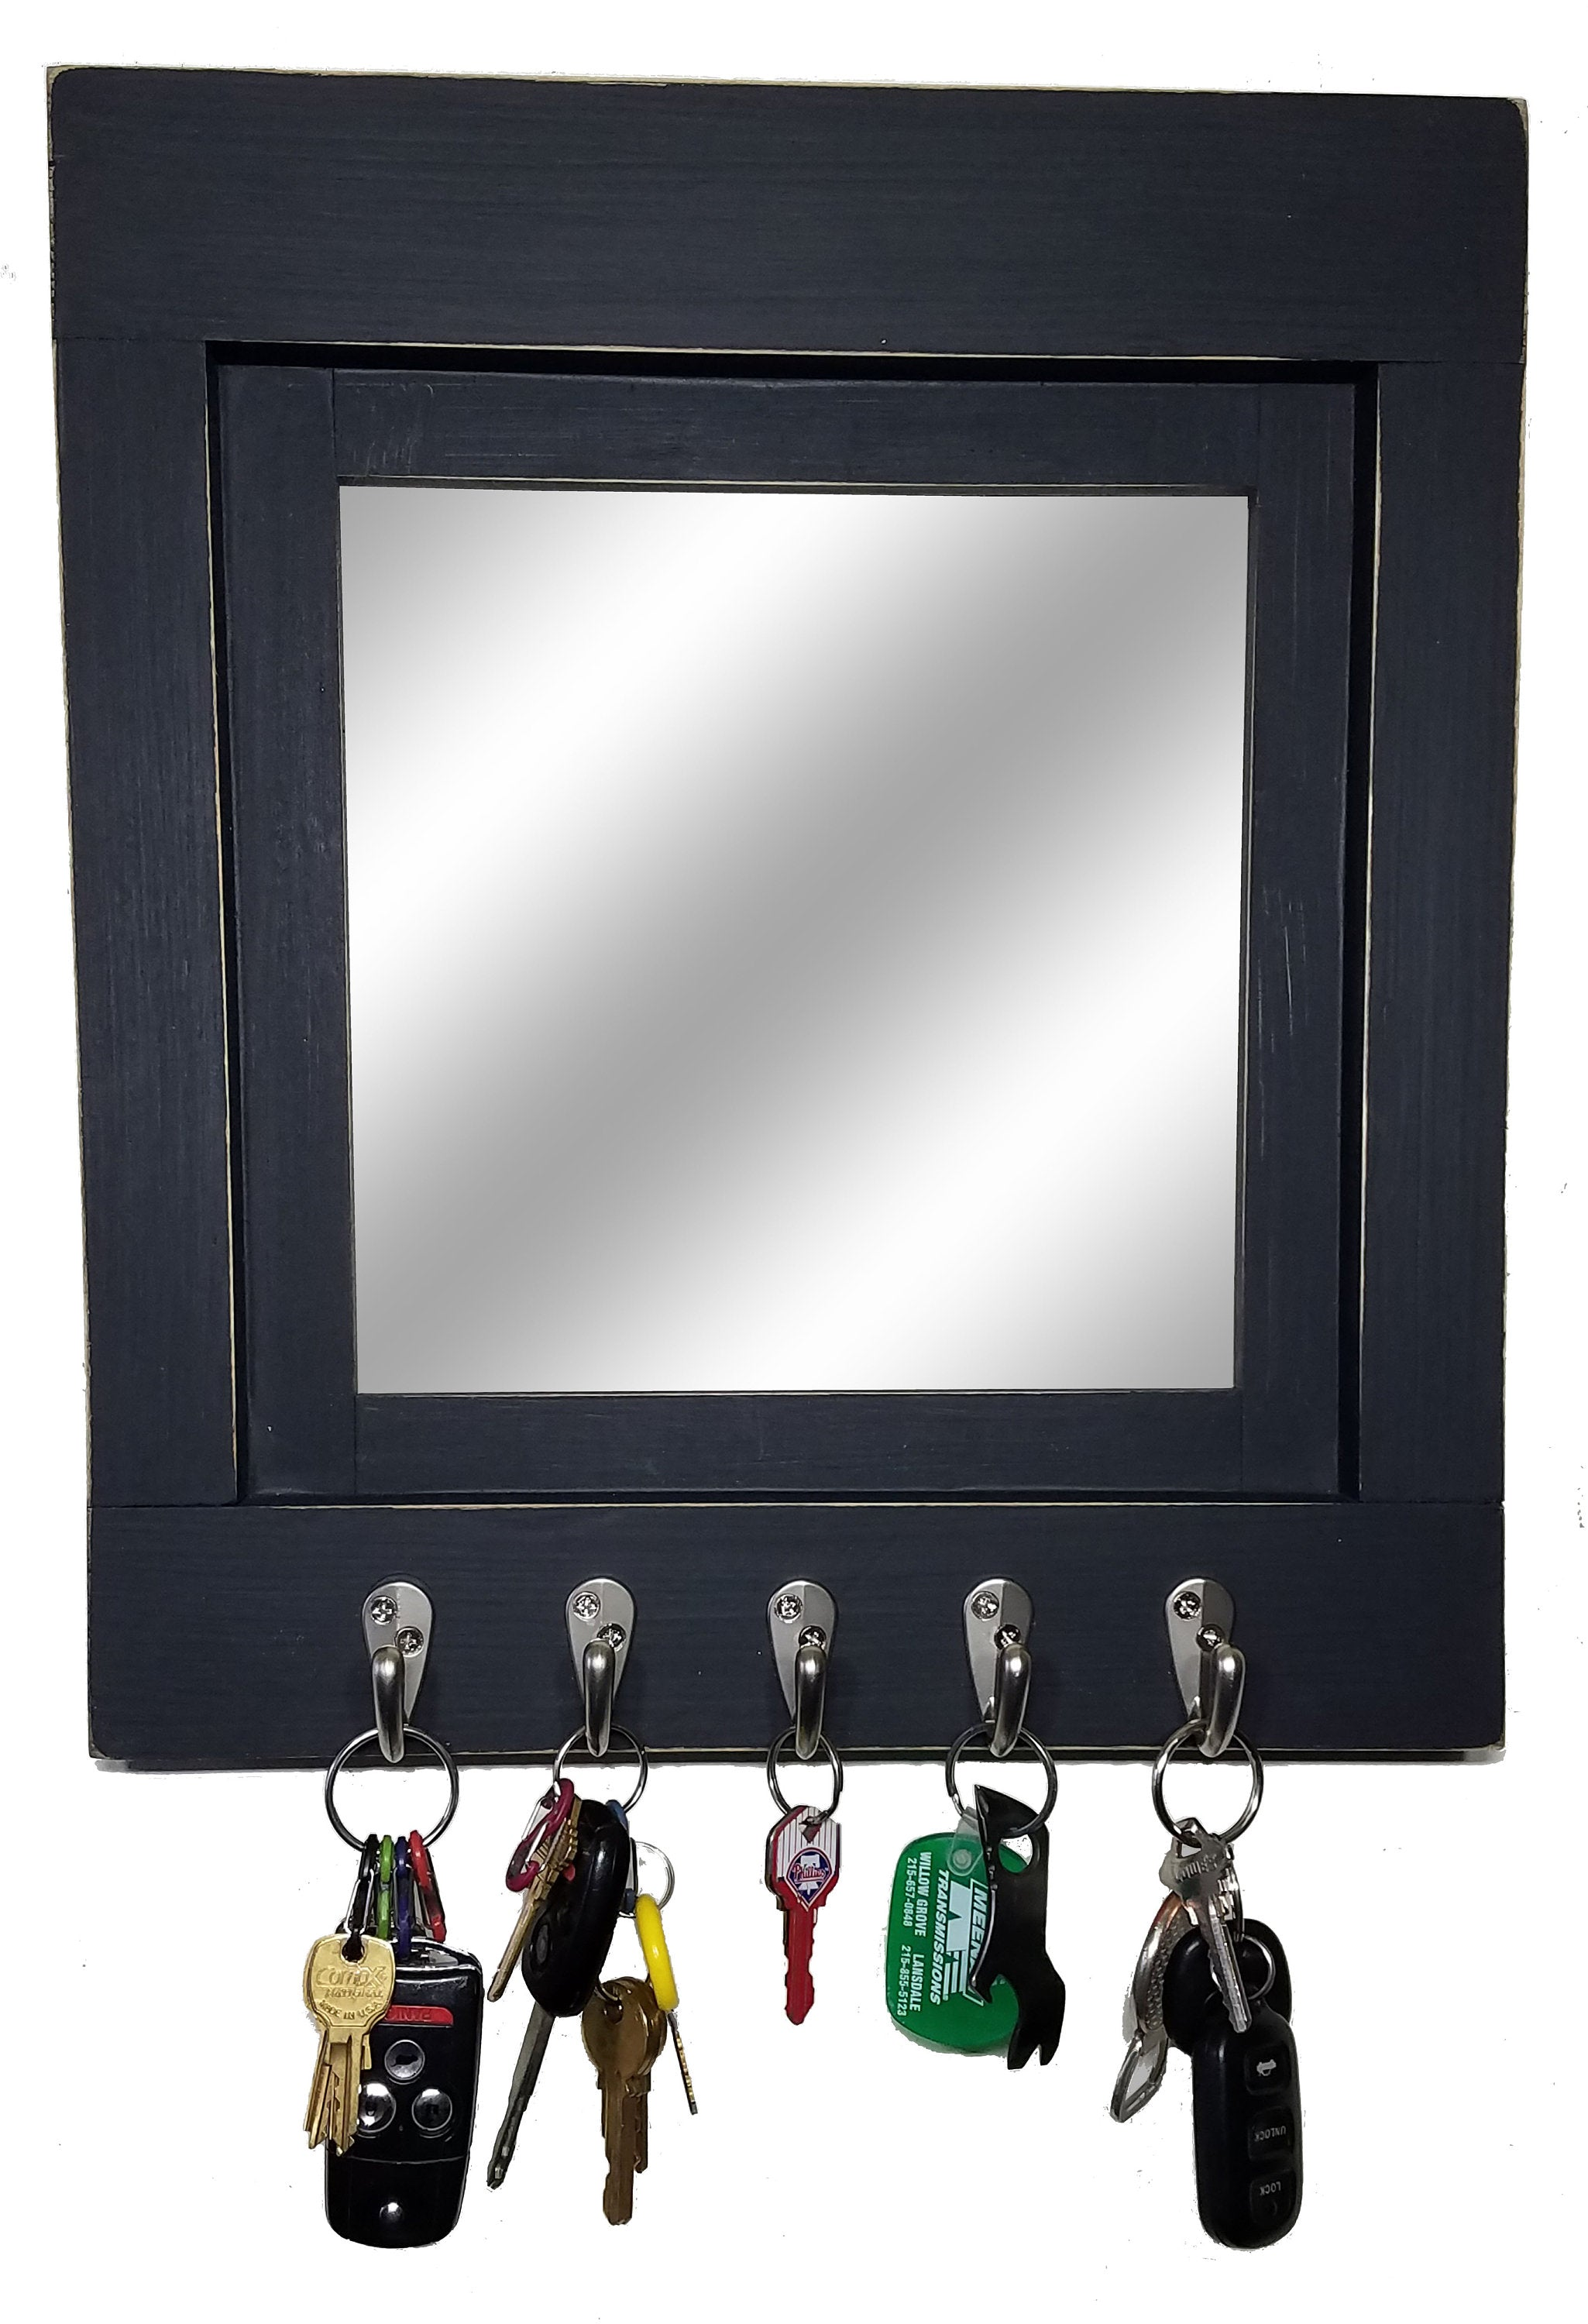 Quakertown Farmhouse Mirror With Hooks, 20 Paint Colors - Renewed Decor & Storage